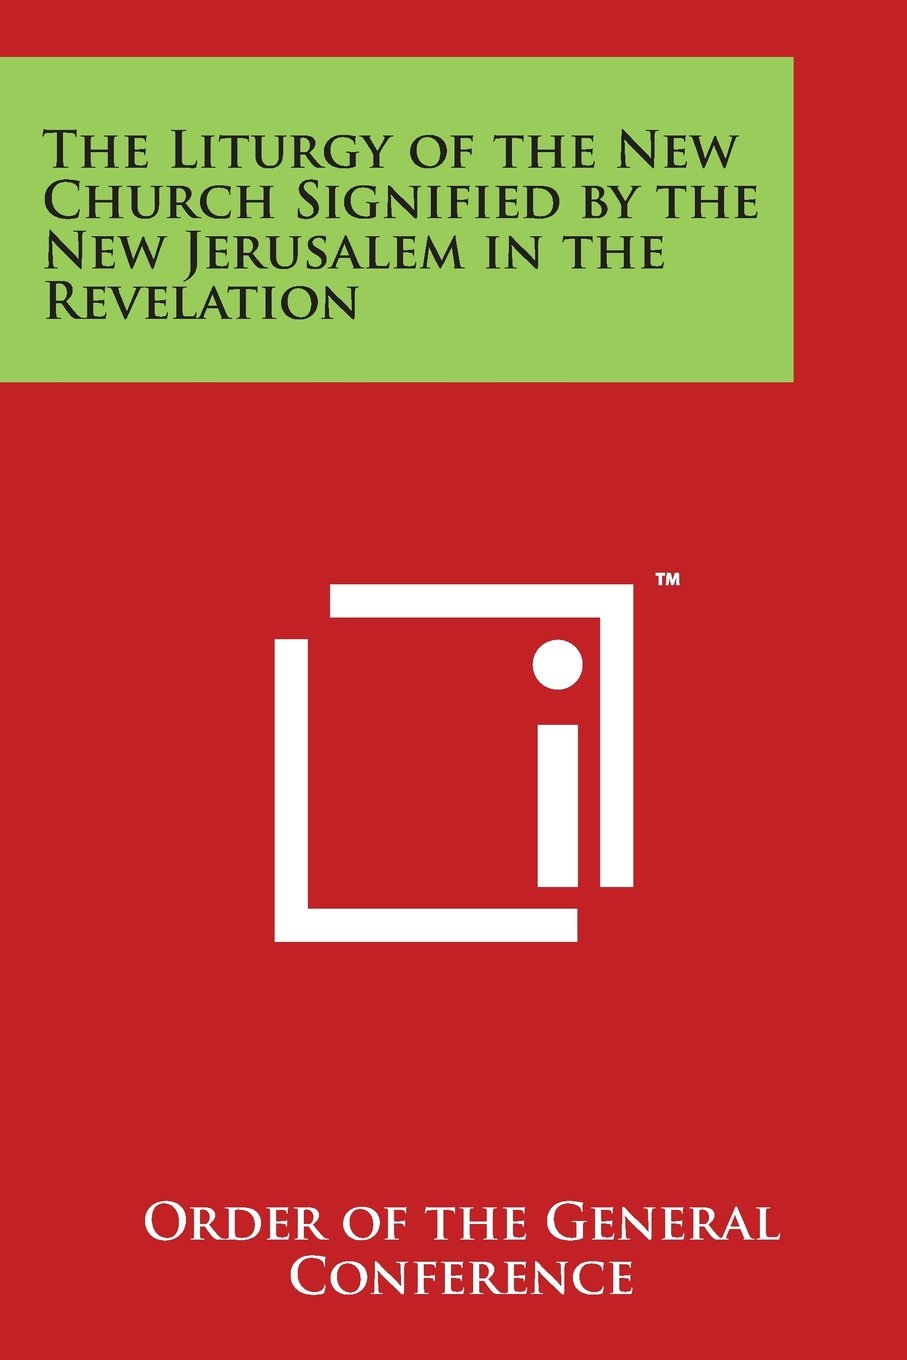 The Liturgy of the New Church Signified by the New Jerusalem in the Revelation pdf